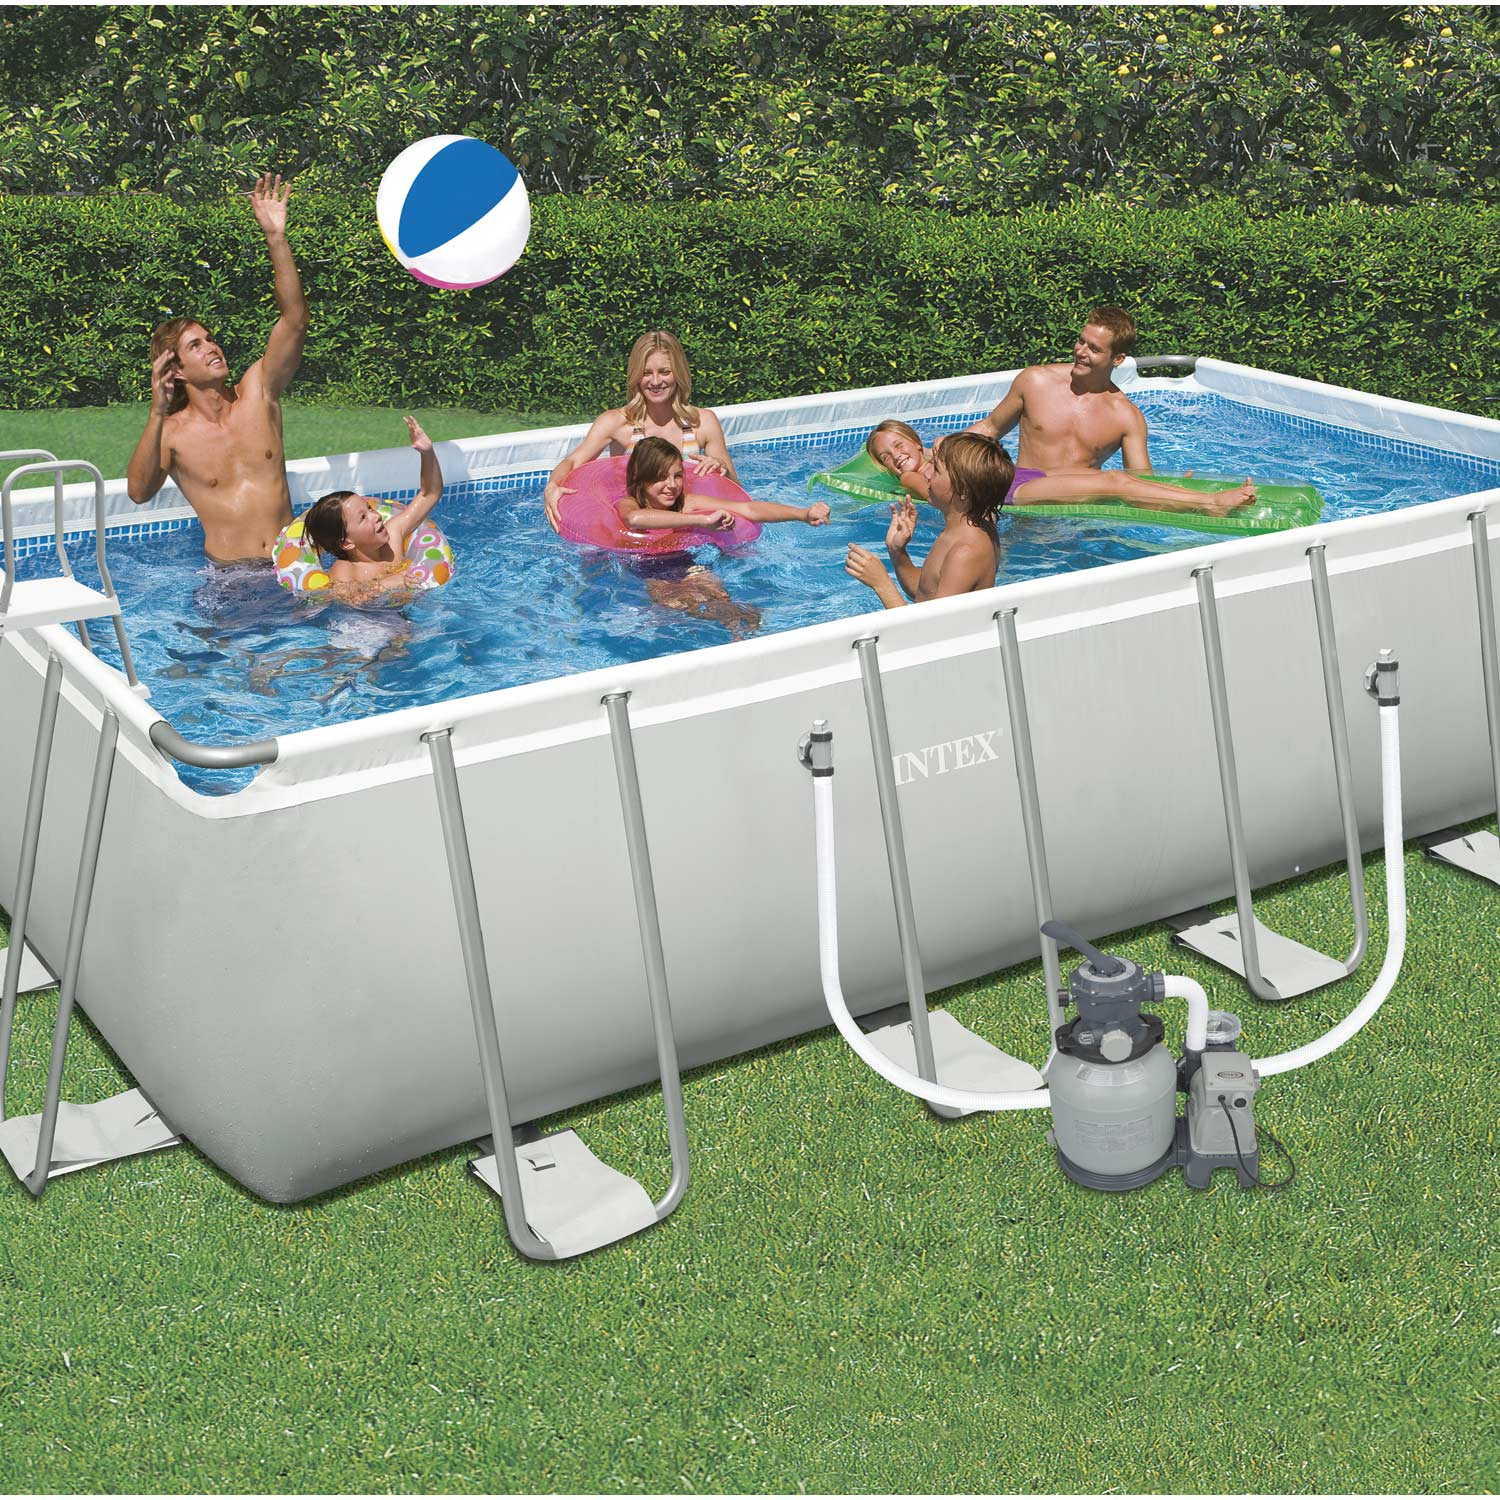 Piscine hors sol autoportante tubulaire ultra silver intex for Piscine auchan hors sol